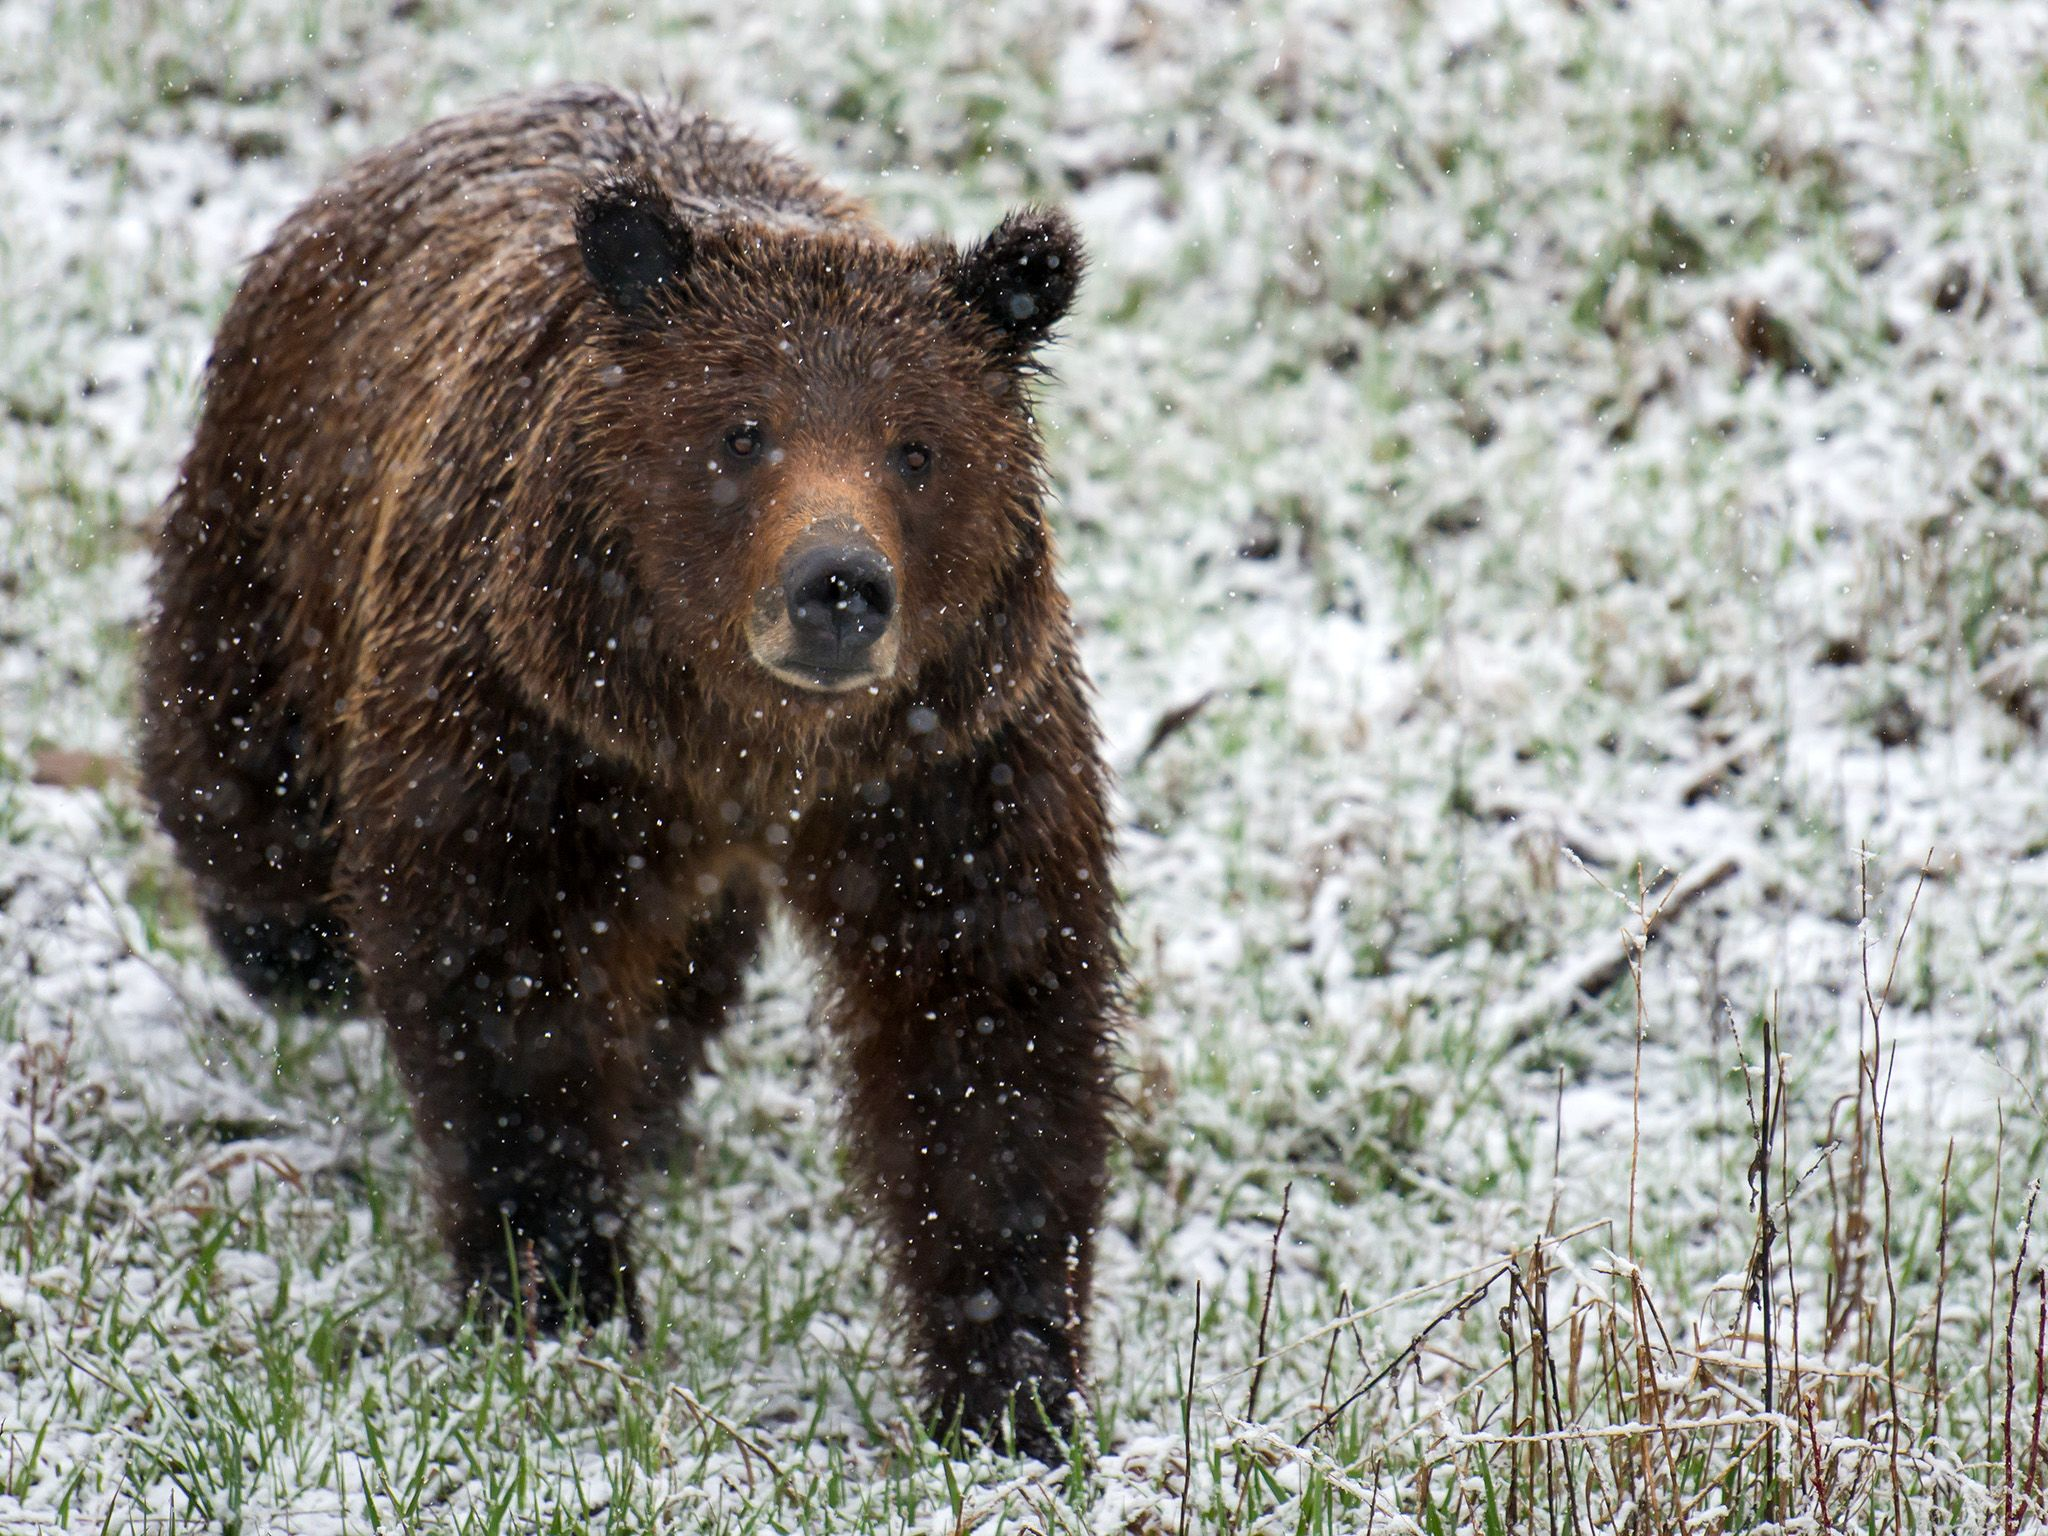 Grand Teton National Park, Wyo.: Brown bear in the early spring snow. This image is from Wild... [Photo of the day - آوریل 2015]